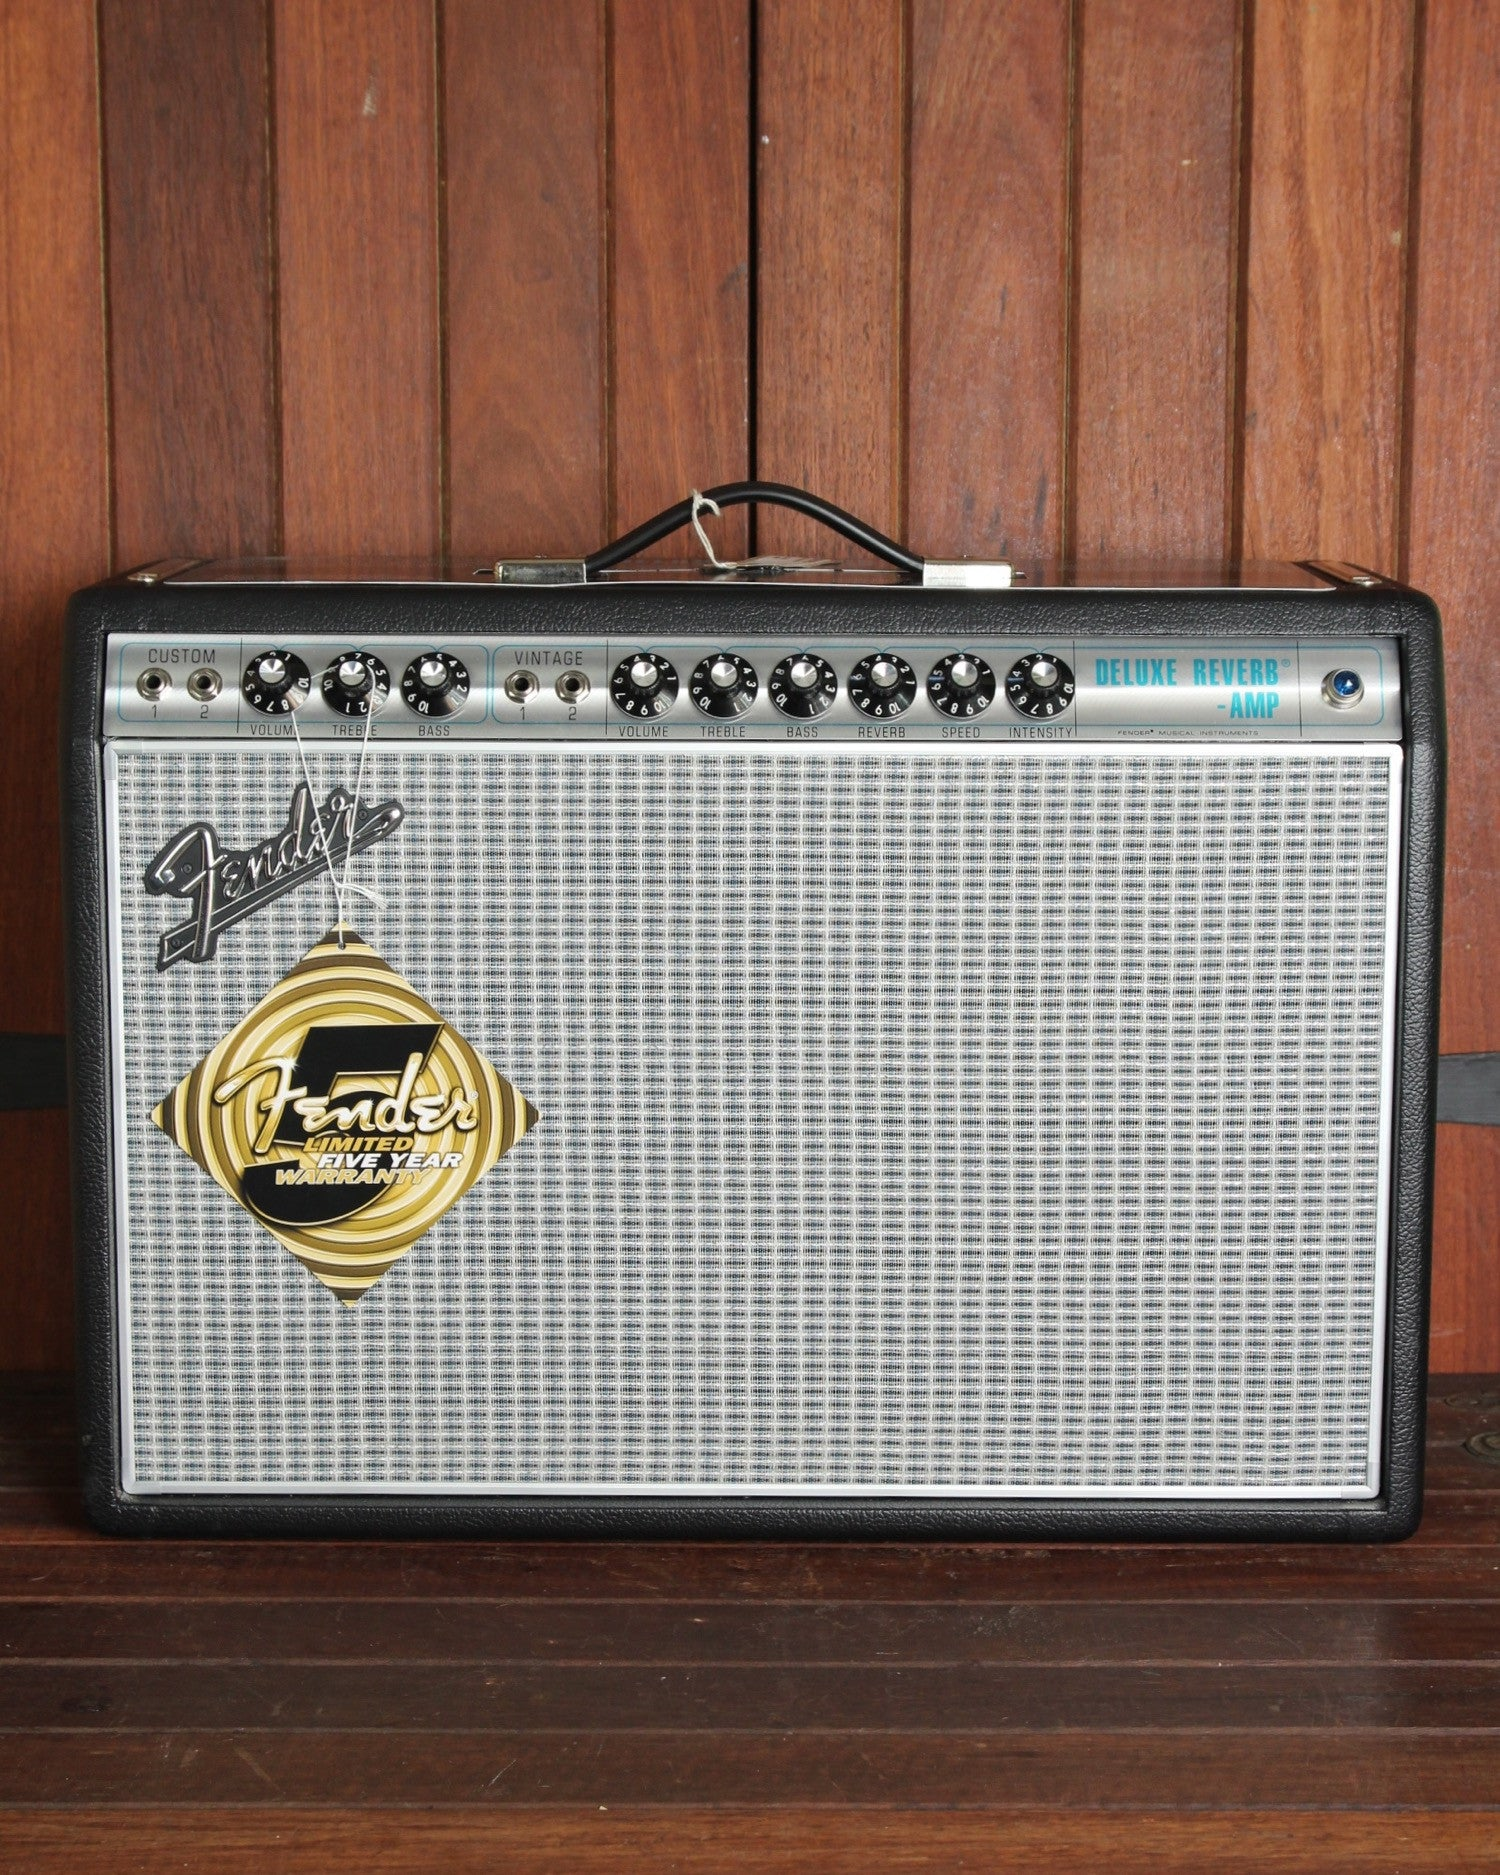 Fender '68 Custom Deluxe Reverb Amplifier - The Rock Inn, Perth Austra, |  The Rock Inn